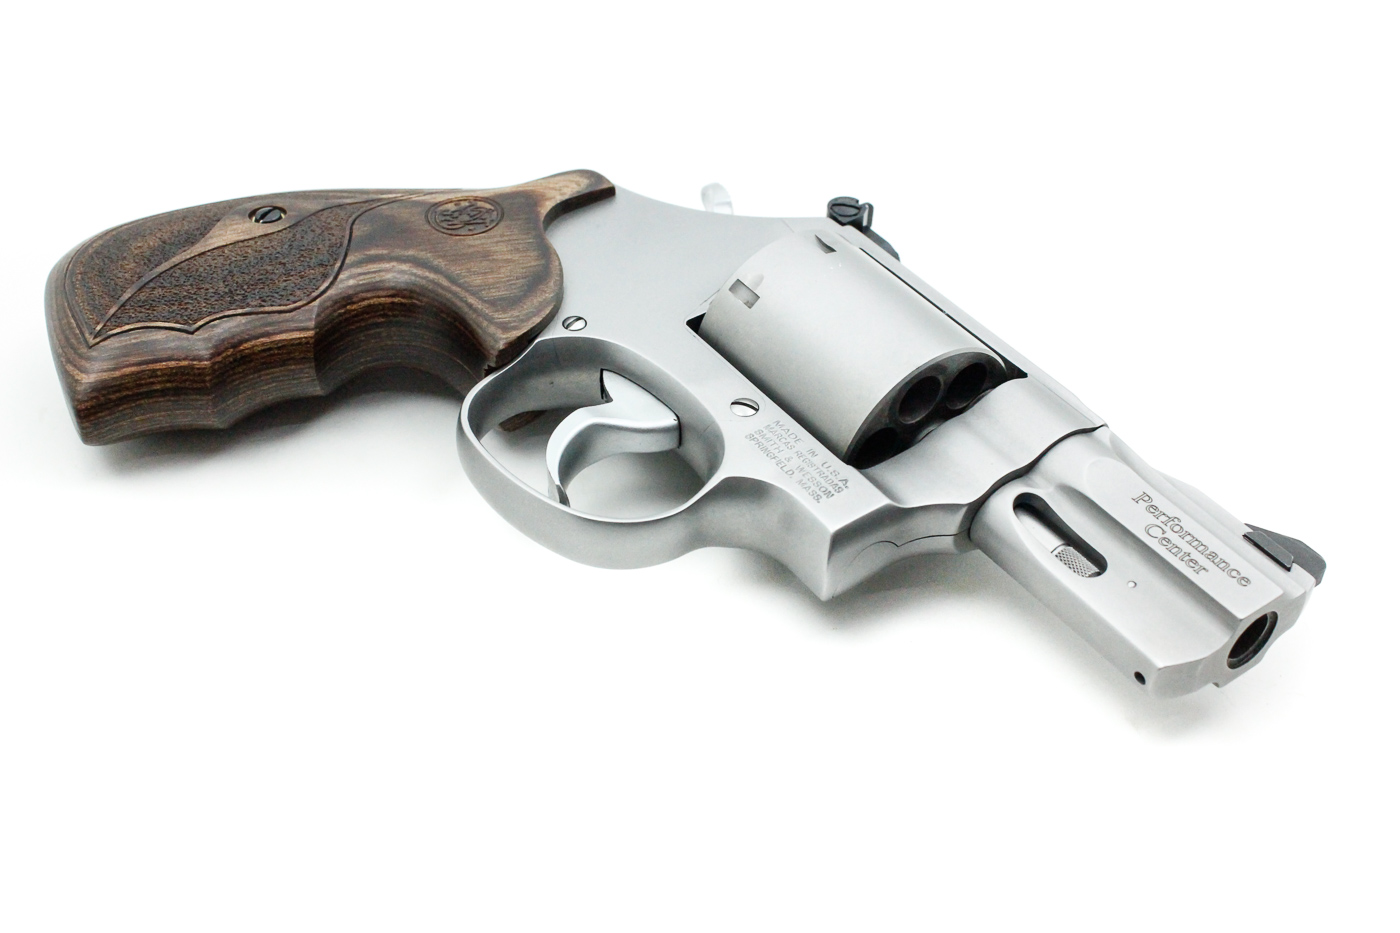 Smith & Wesson 686 Performance Center 7-Shot, .357 Magnum - Image 5